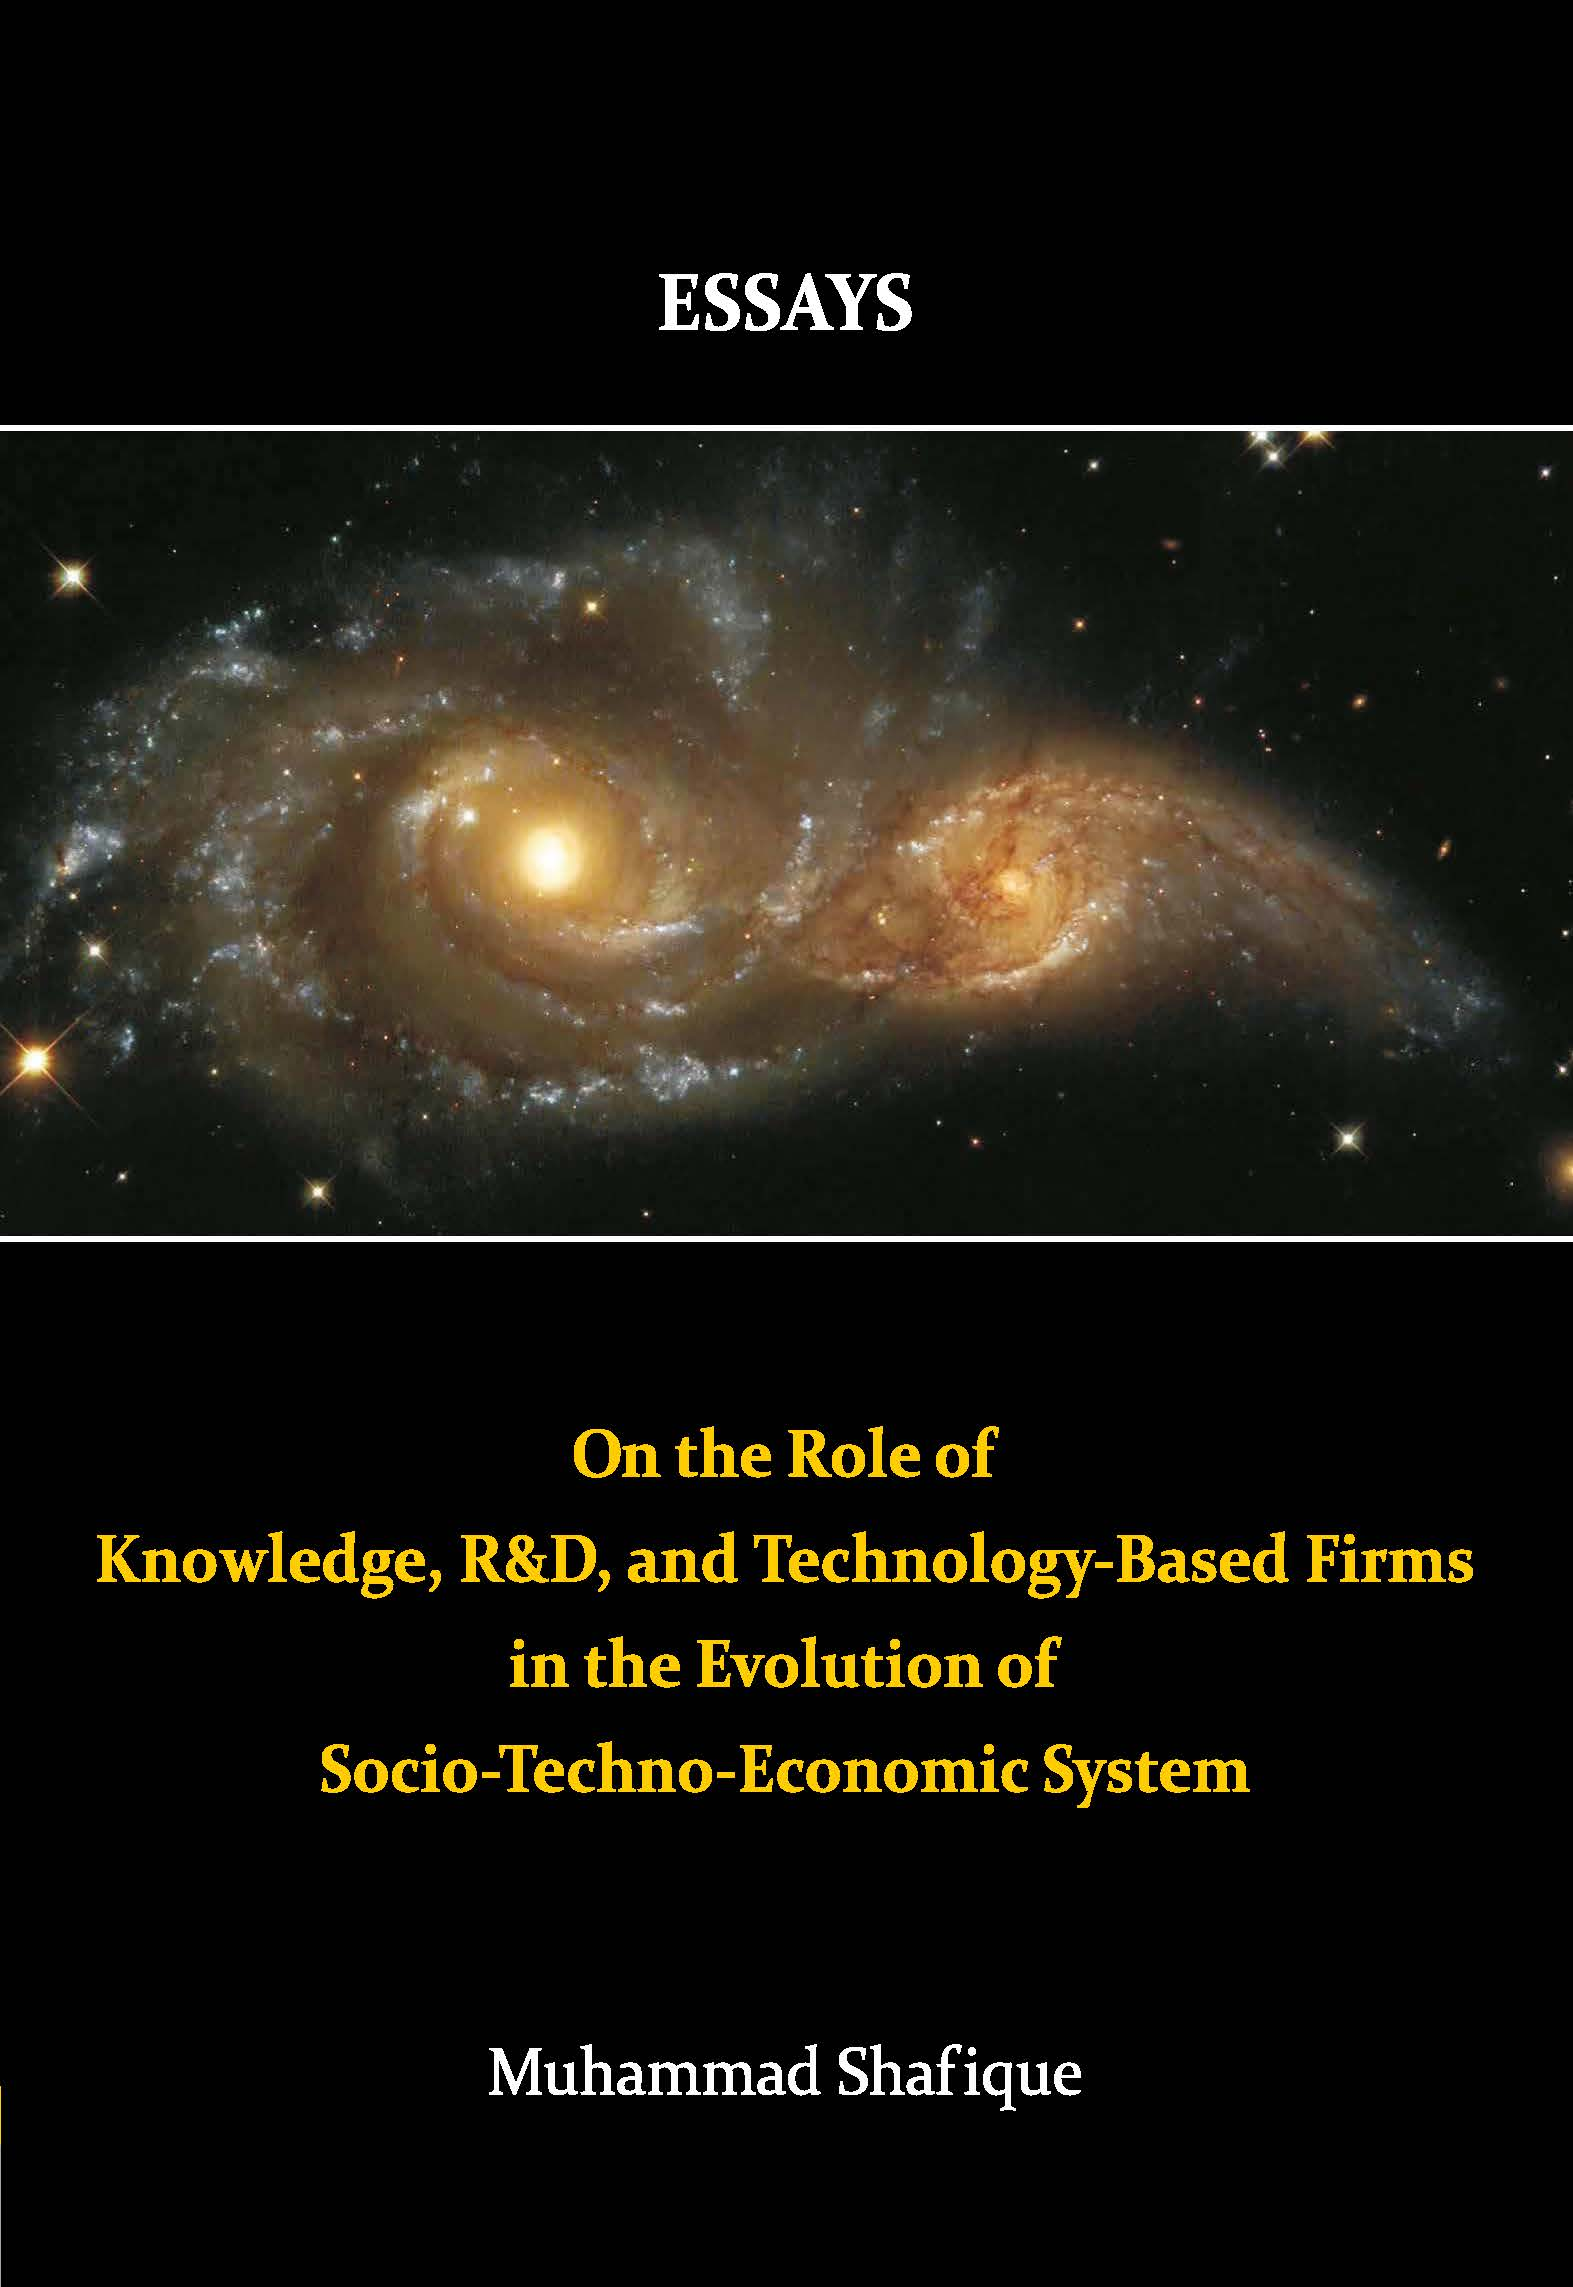 essays on the role of knowledge r d and technology based firms associated researcher